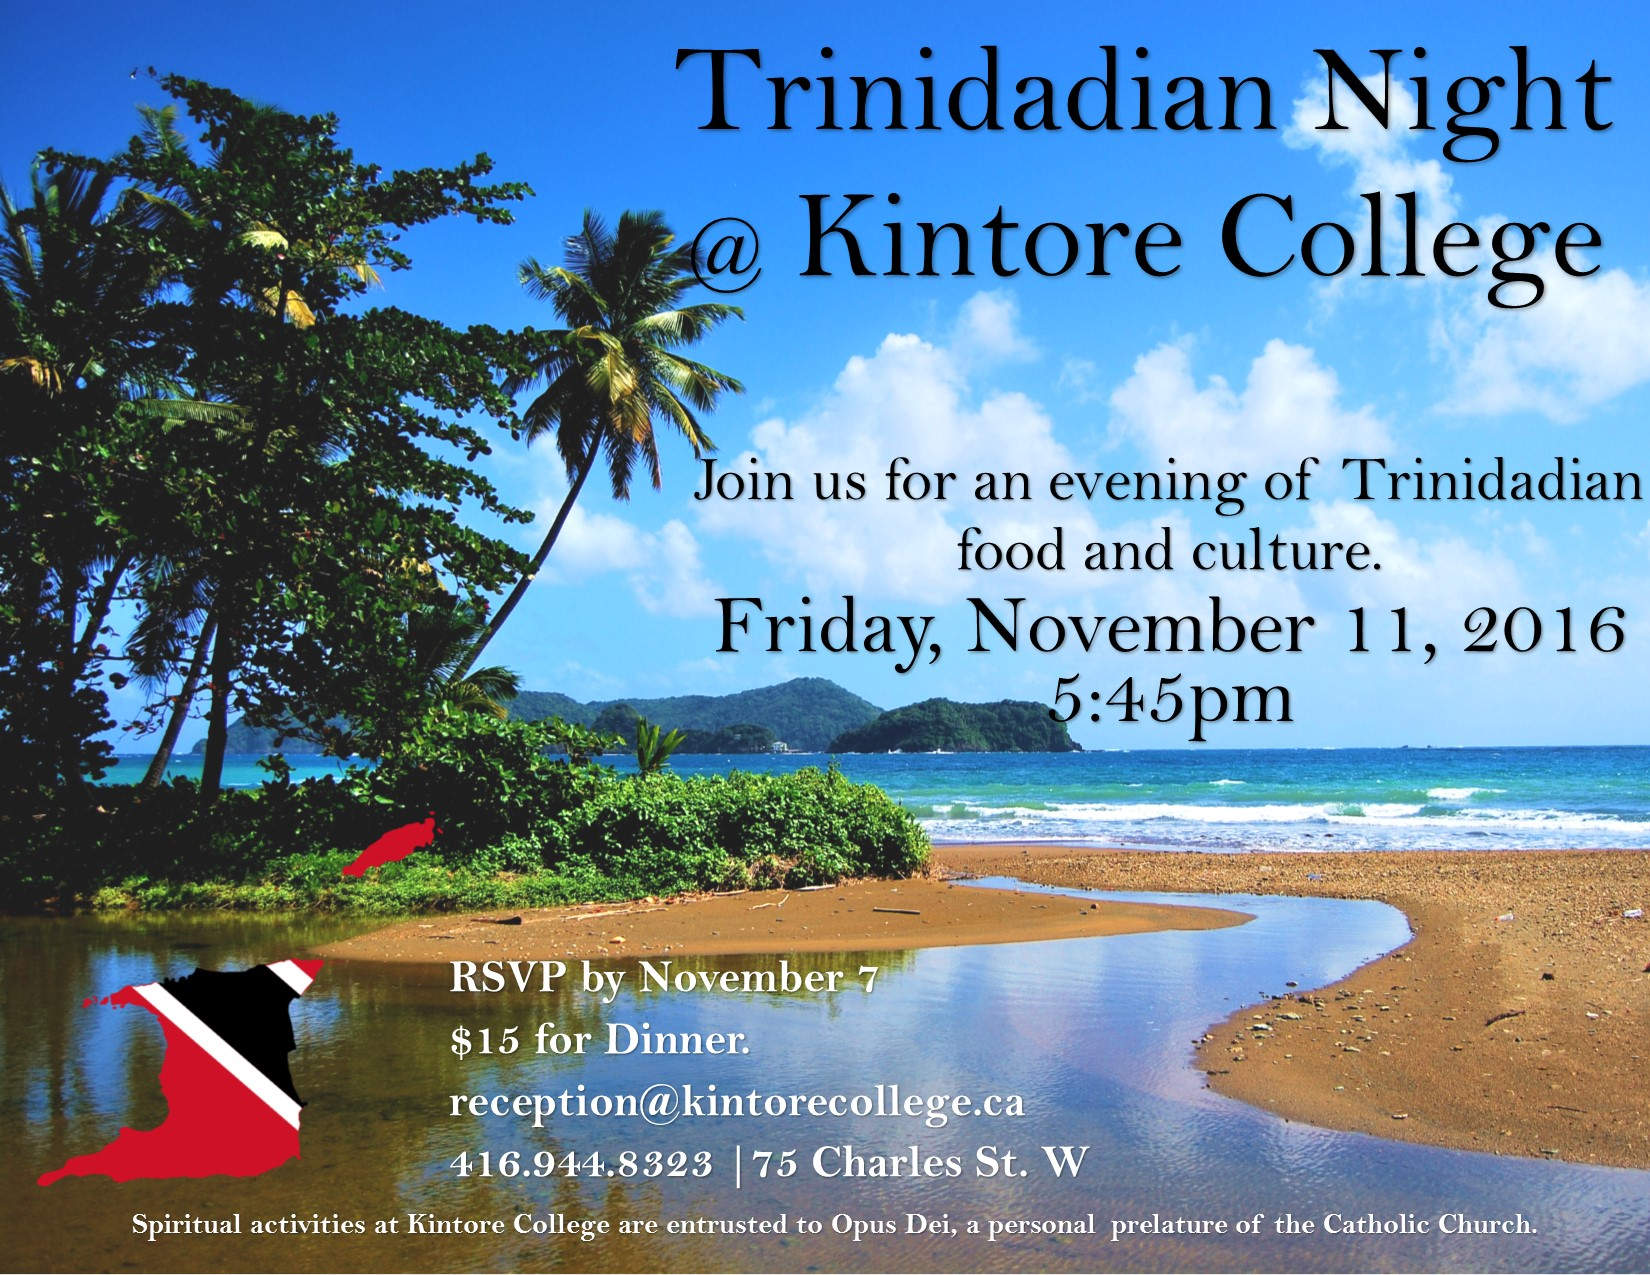 Trinidadian Night at Kintore College, Nov.11, 2016